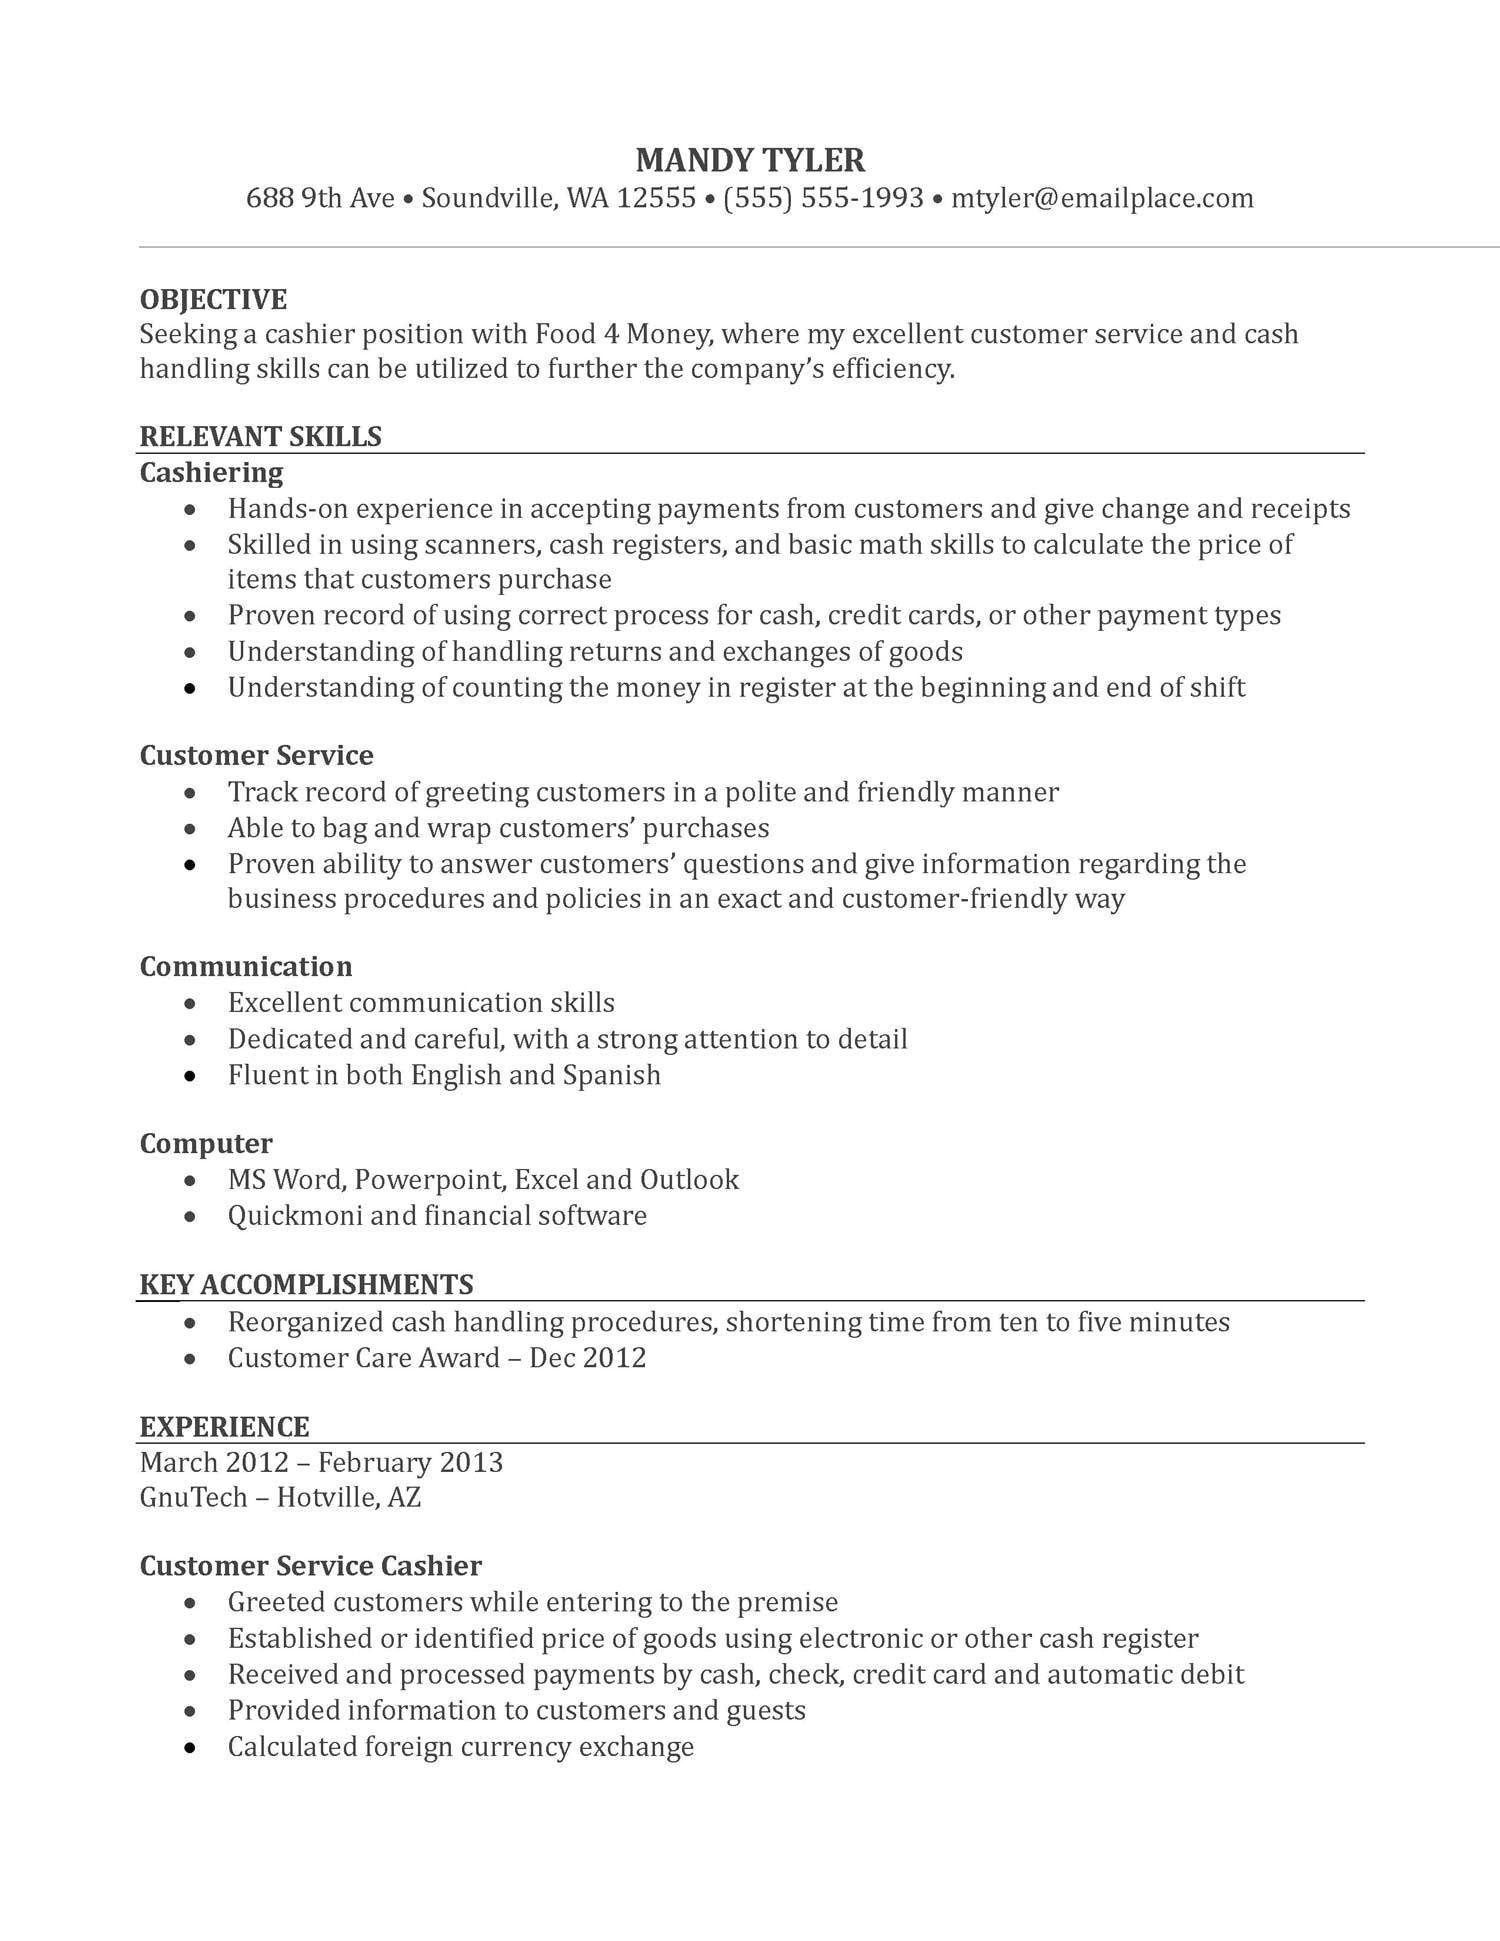 Resume Samples Pdf Download